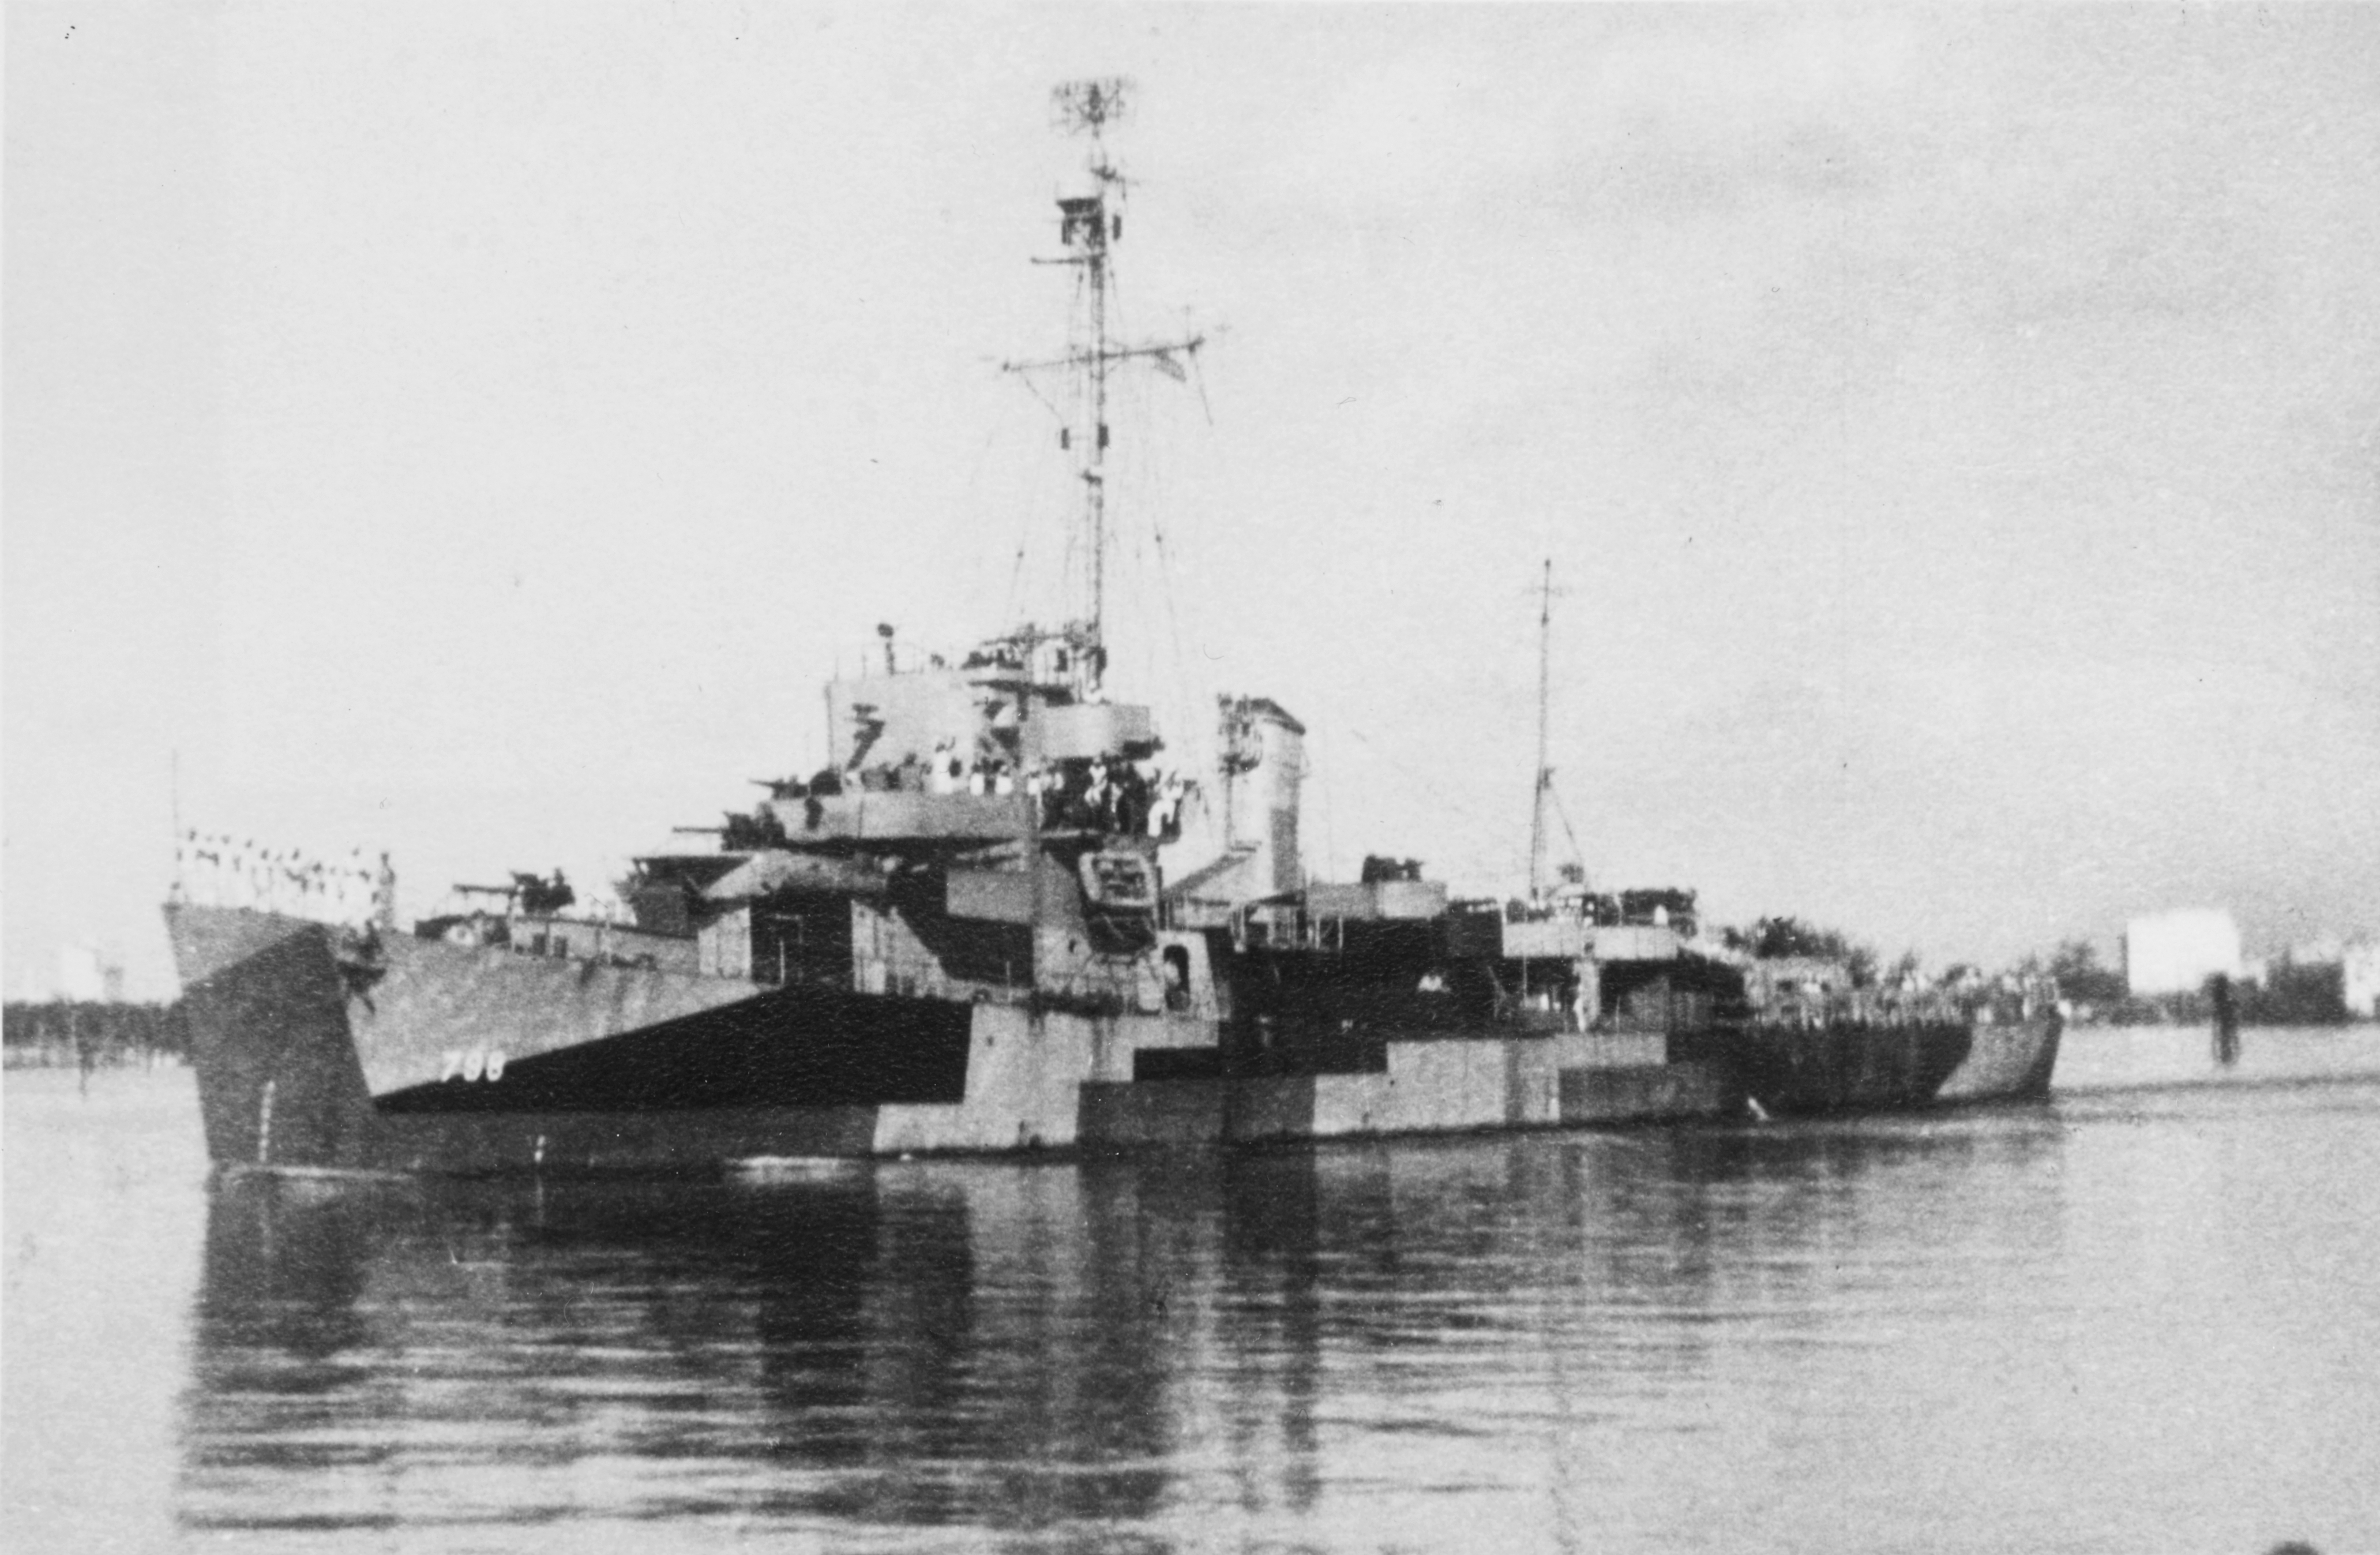 USS Varian (DE-798), while operating out of Miami, Florida, summer 1945.